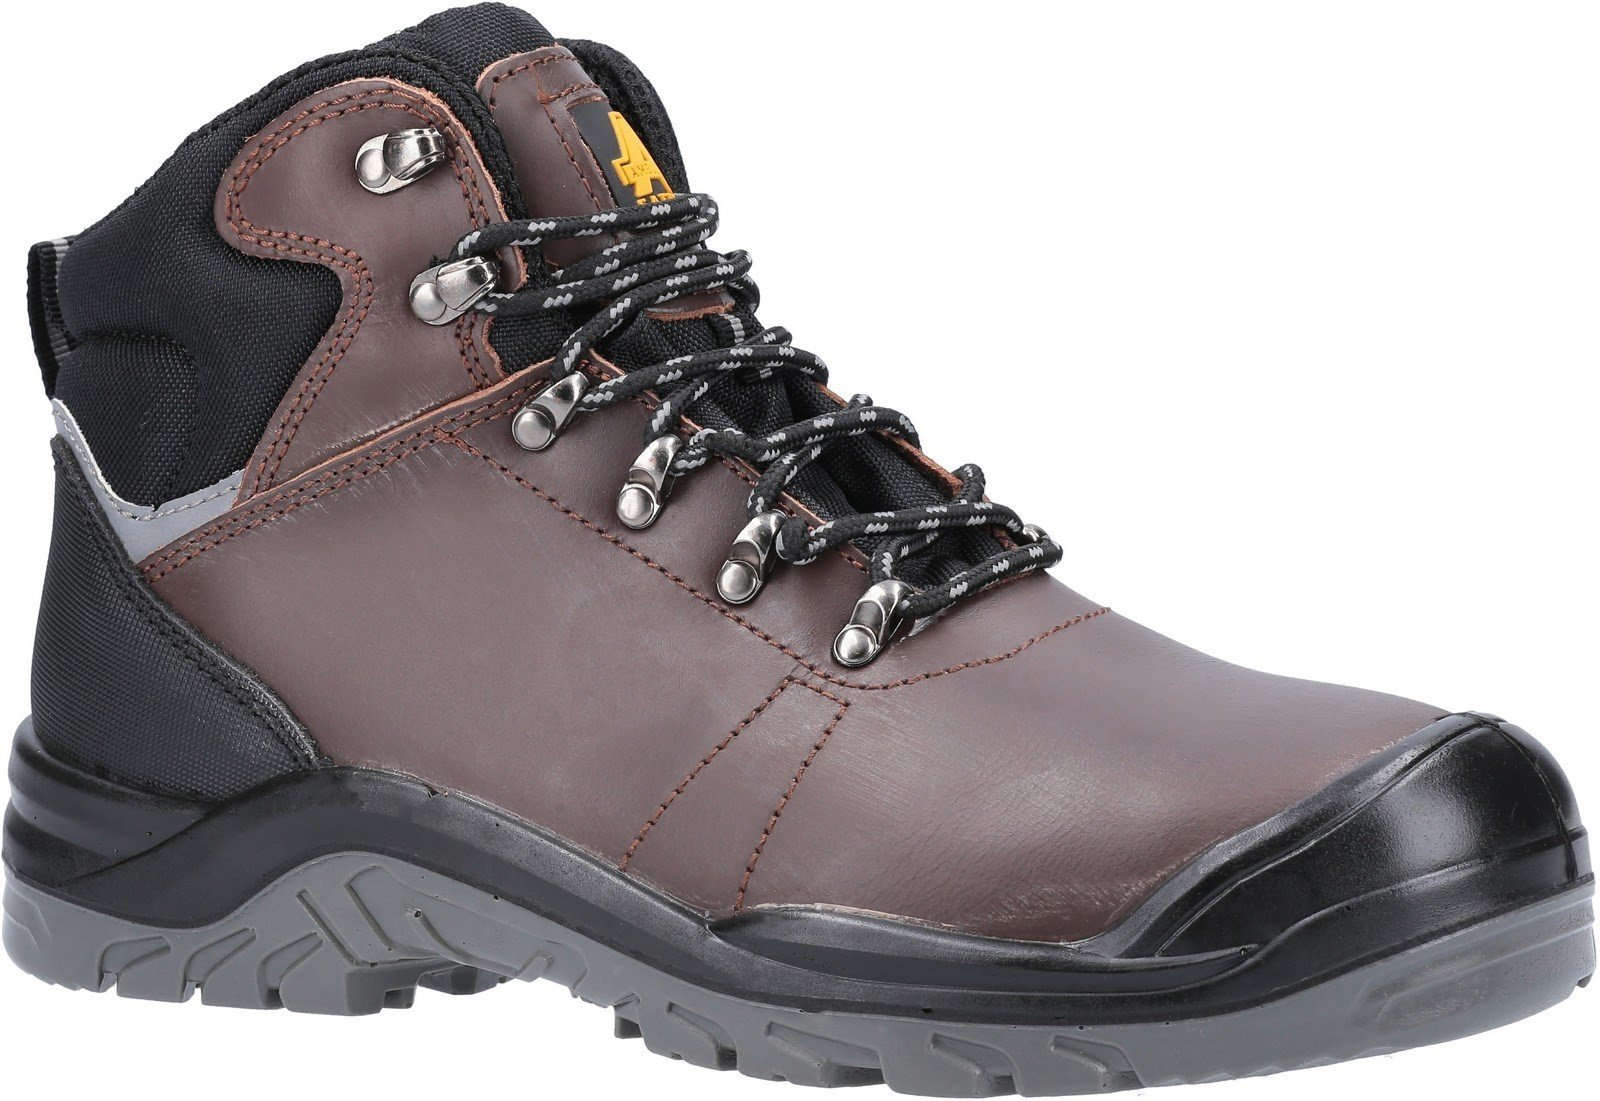 Amblers Unisex Safety Laymore Water Resistant Leather Boot Brown 27771 - Brown 6